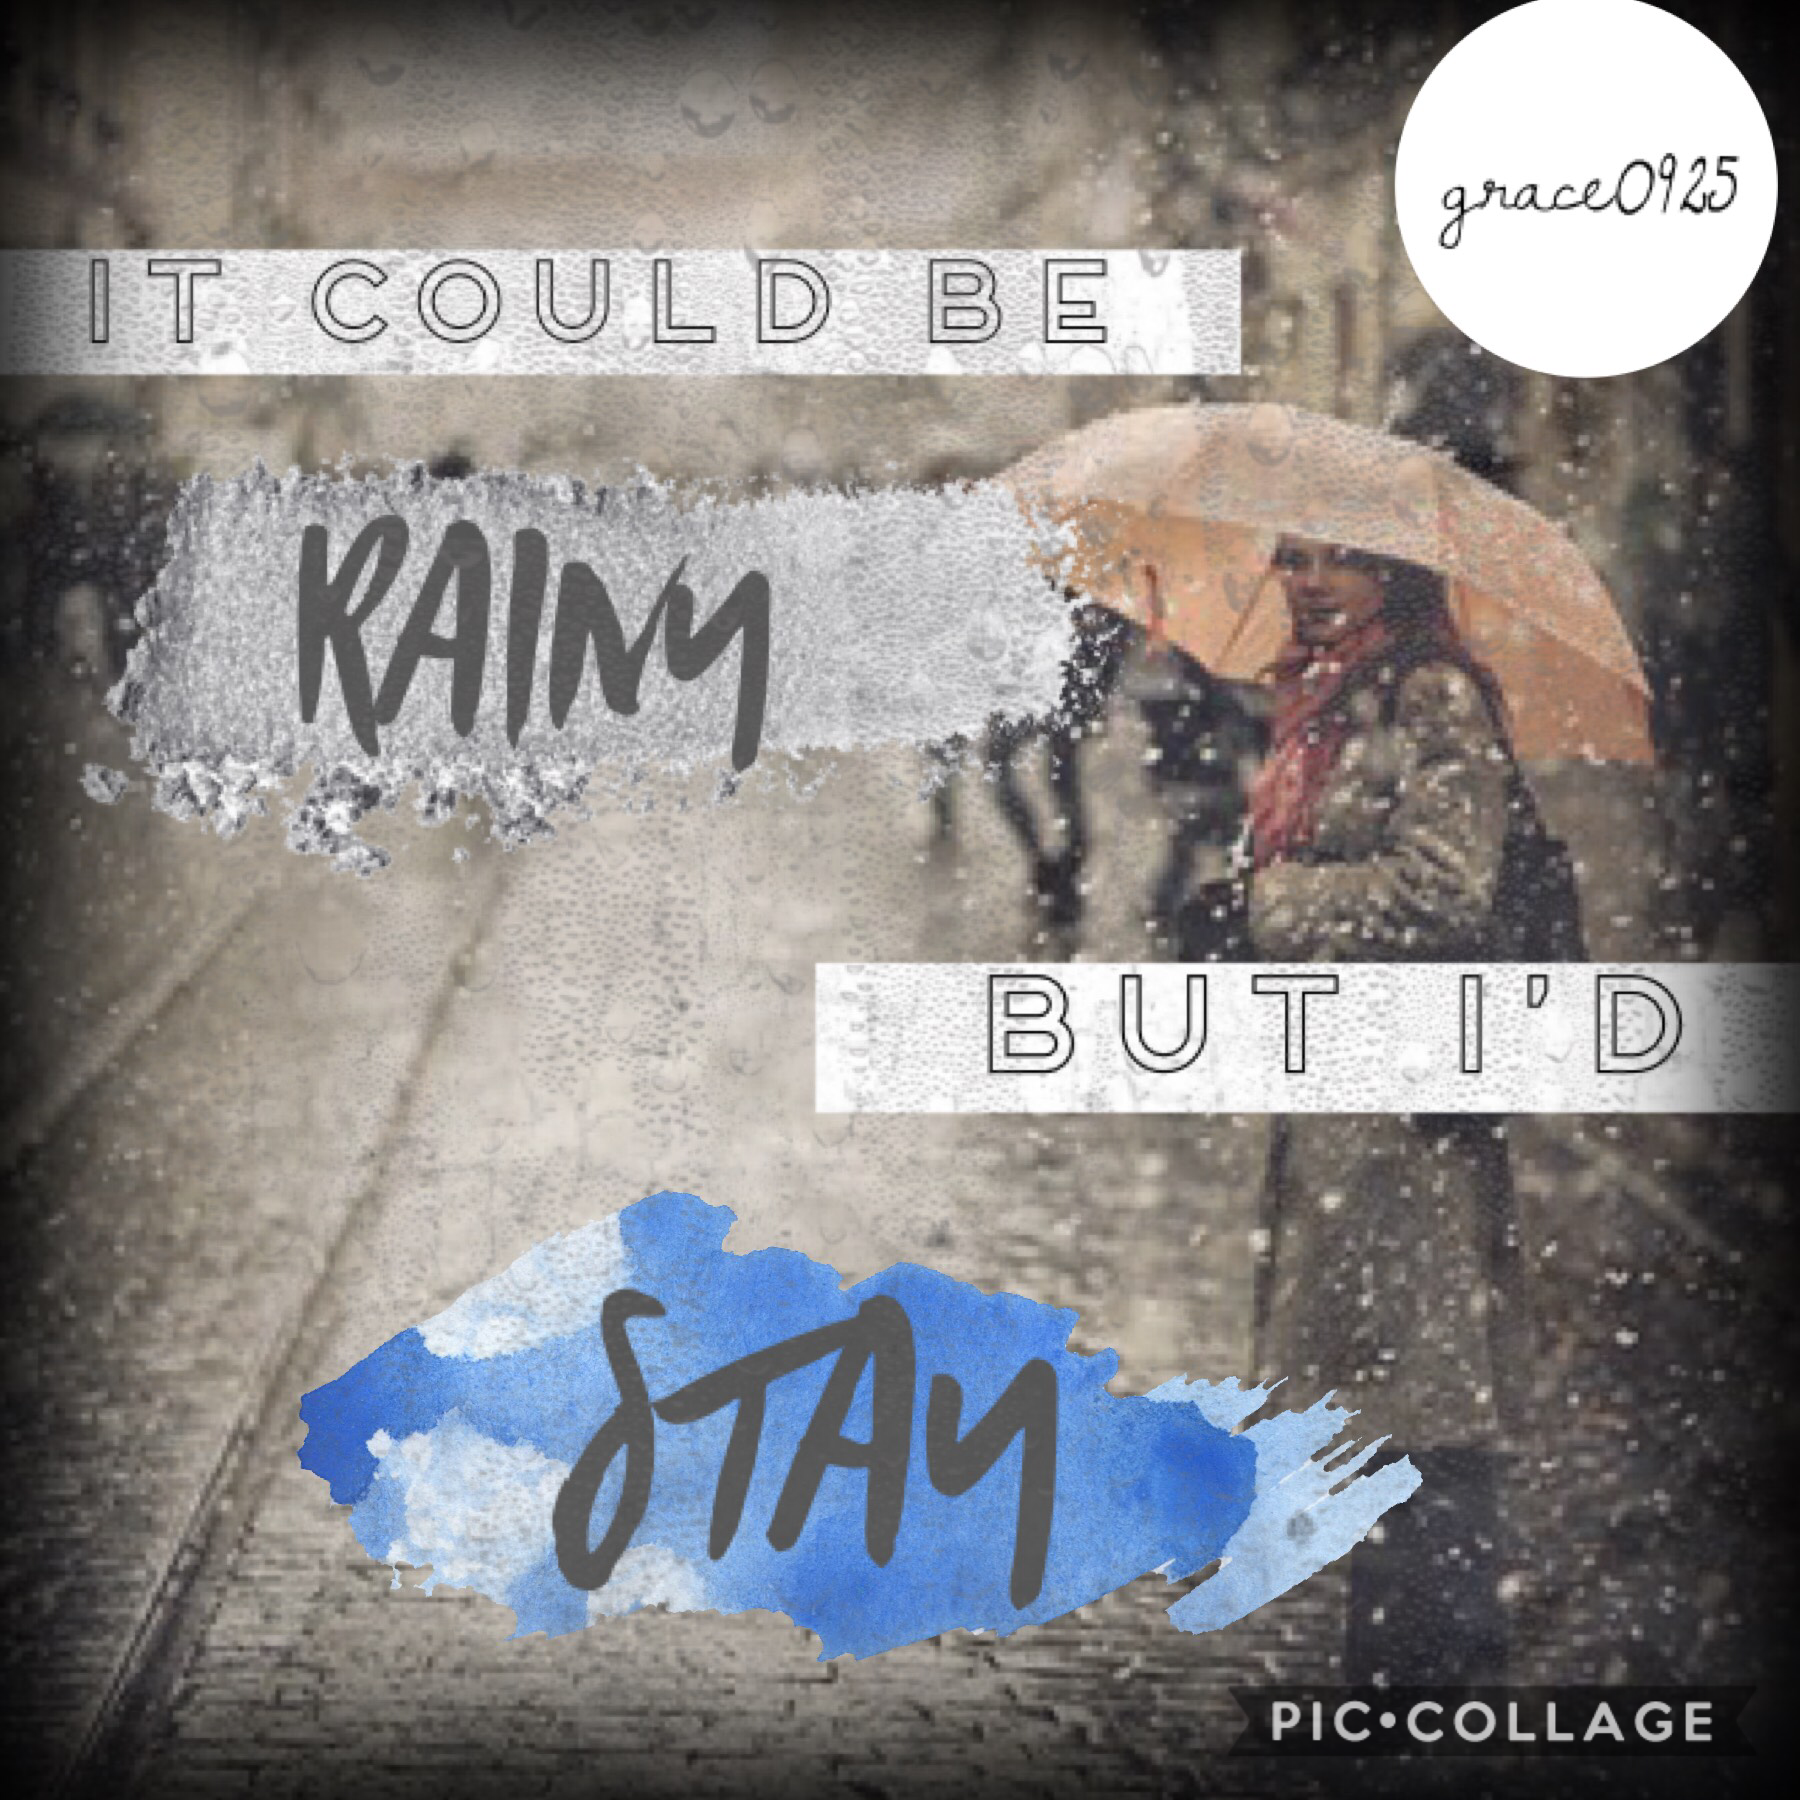 🌧tap🌧  I'm going to try something new for this upcoming week by taking inspiration from other users. Comment on ur favorite collage!! -Grace0925🌻🥀